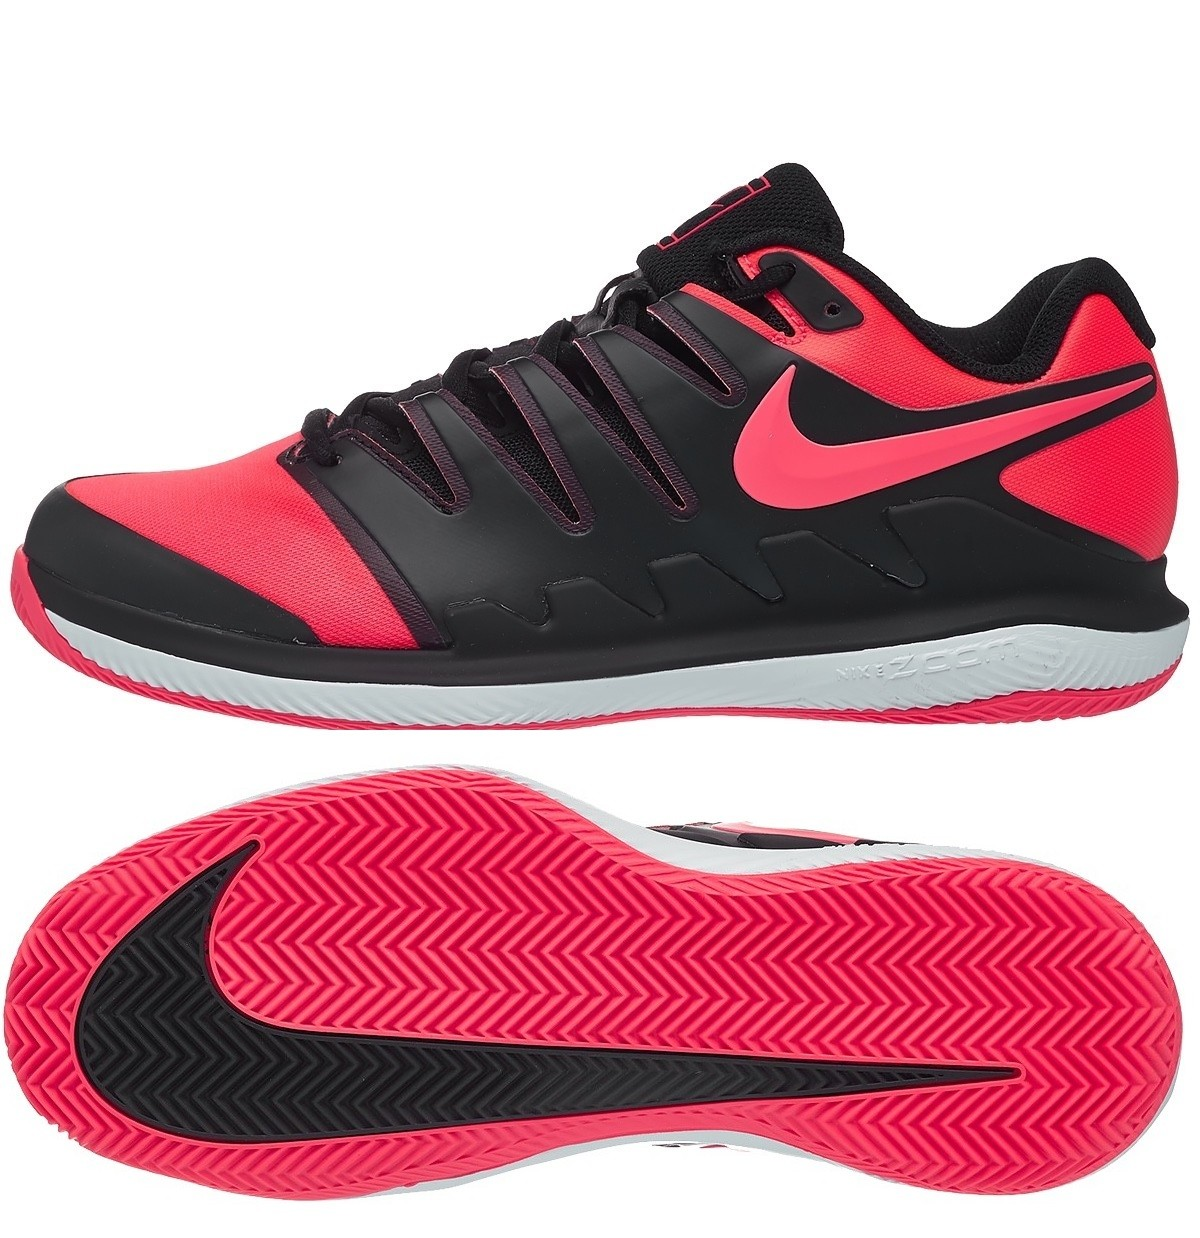 Tenisová obuv Nike Air Zoom Vapor X Clay AA8021-006 black   polar red c23859e3340